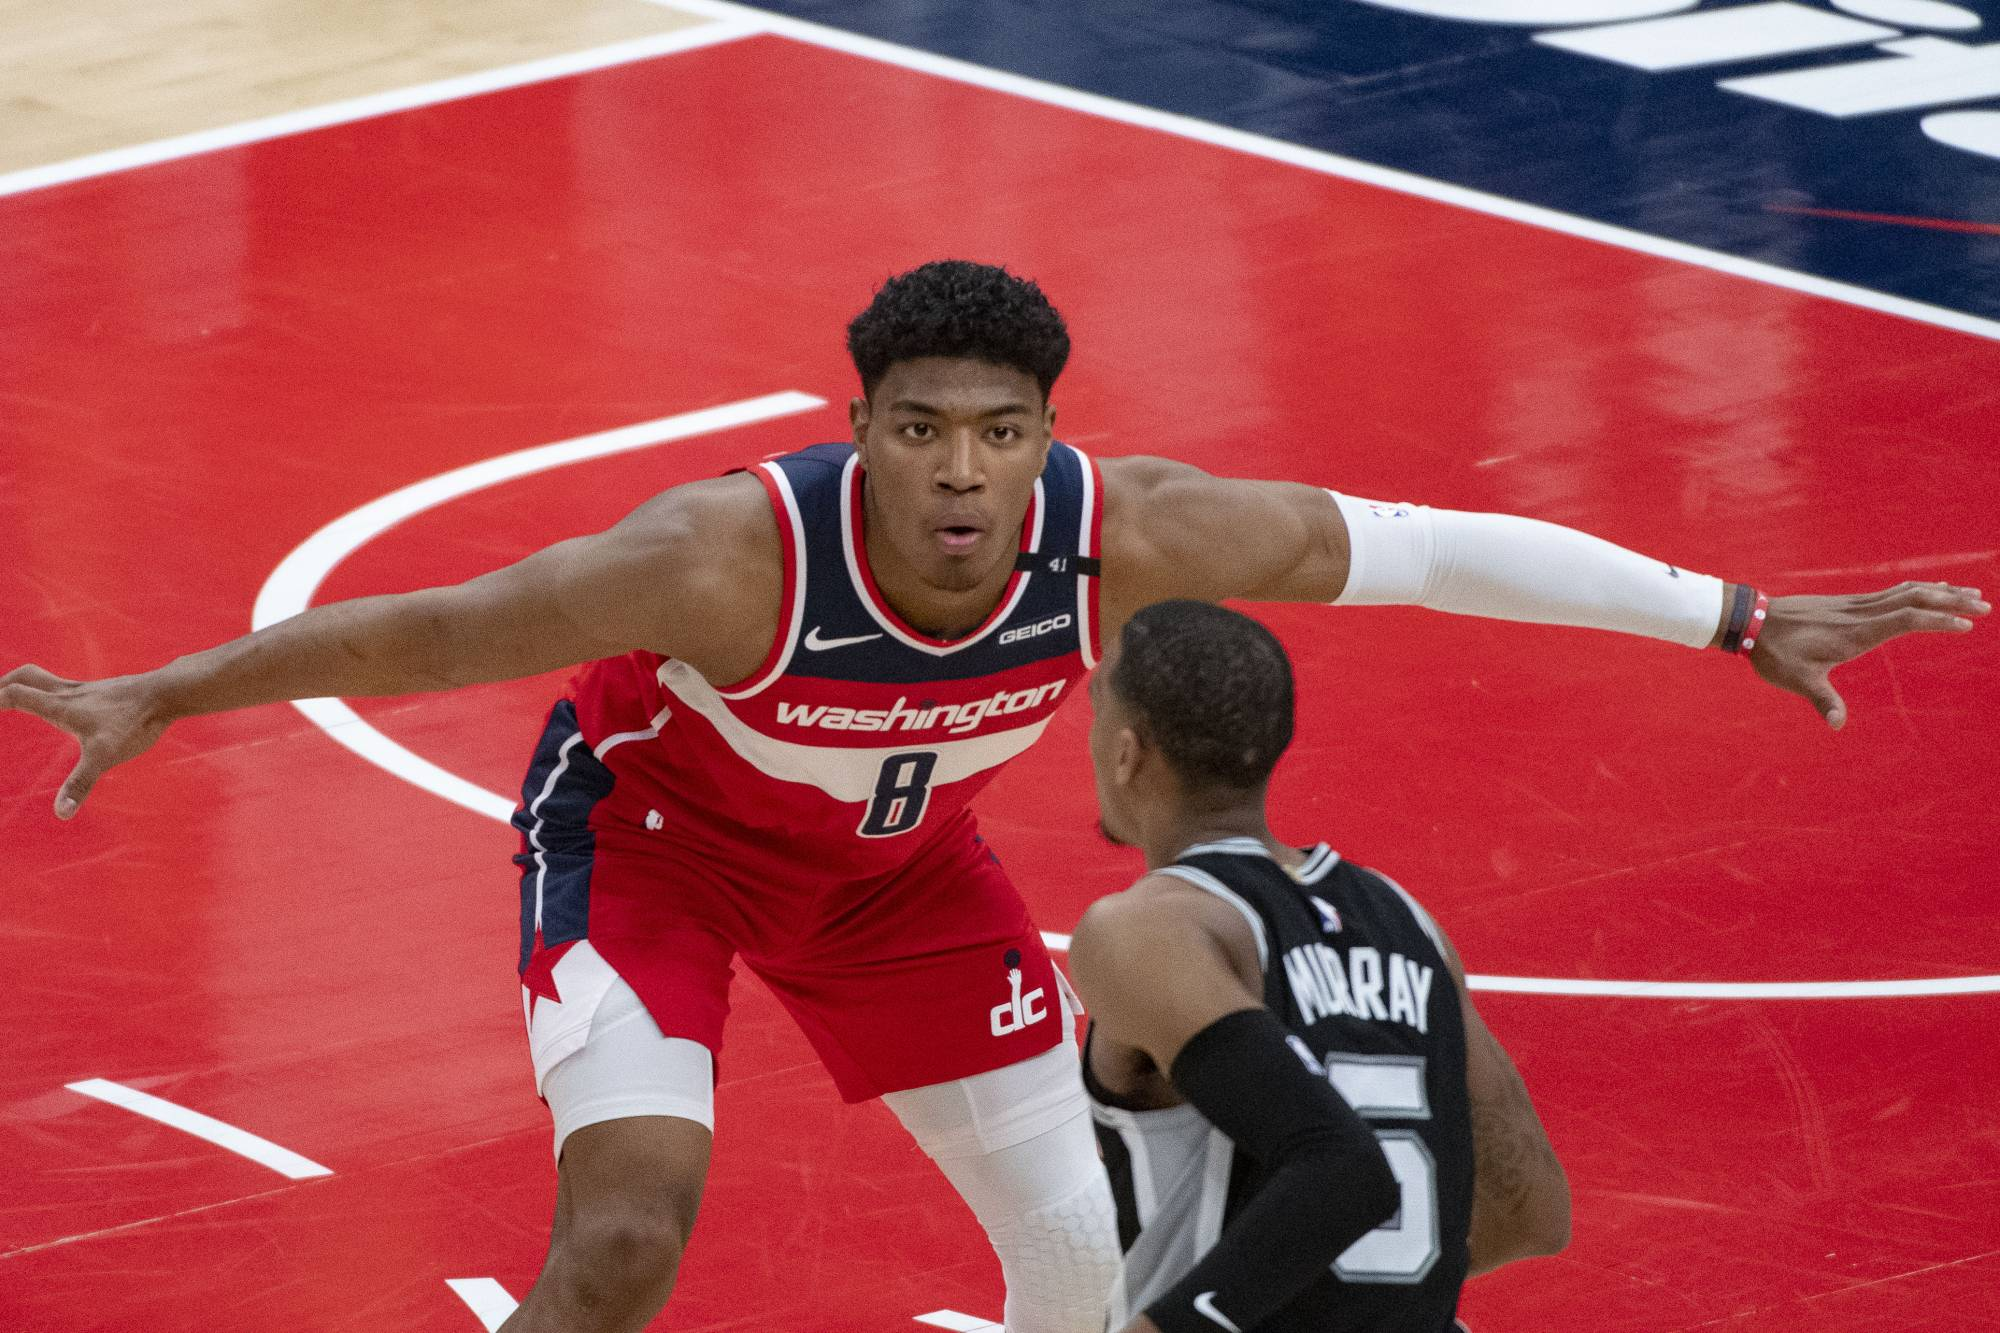 Wizards forward Rui Hachimura defends against Spurs guard Dejounte Murray on Monday at Capital One Arena in Washington. | USA TODAY / VIA REUTERS